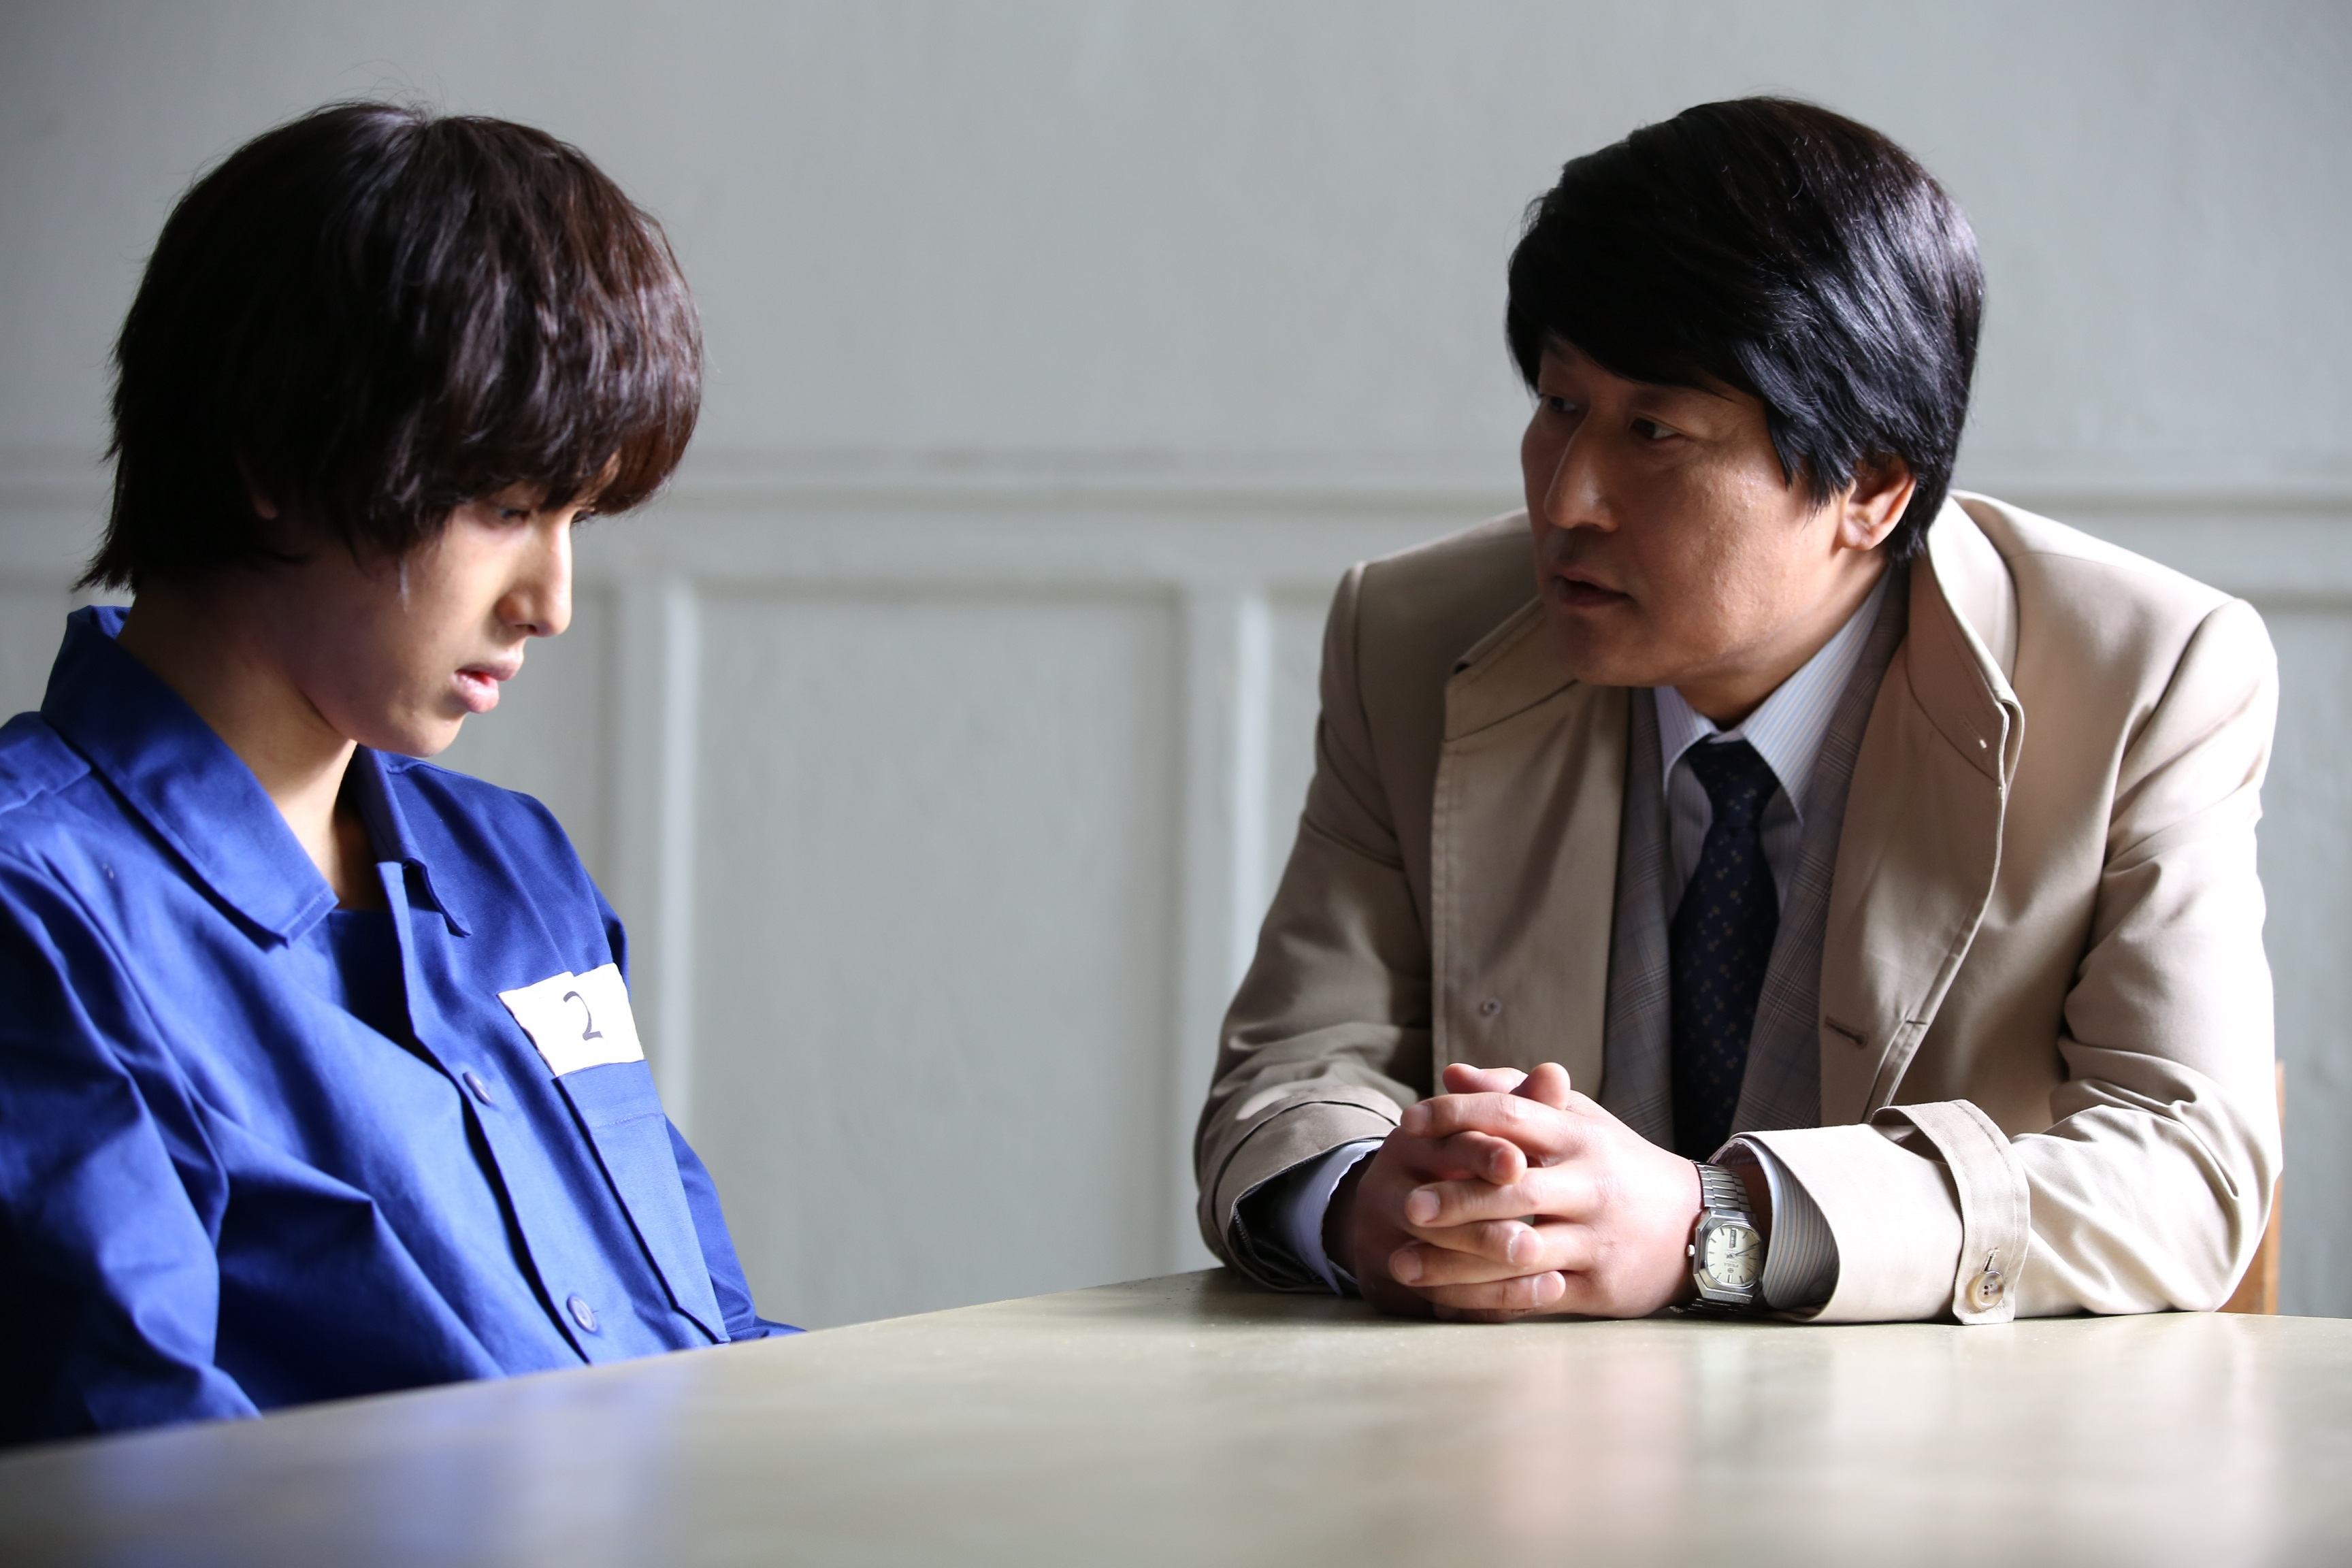 左から ZE:Aイム・シワン、ソン・ガンホ 映画『弁護人』  (C)2013 Next Entertainment World Inc. & Withus Film Co. Ltd. All Rights Reserved.